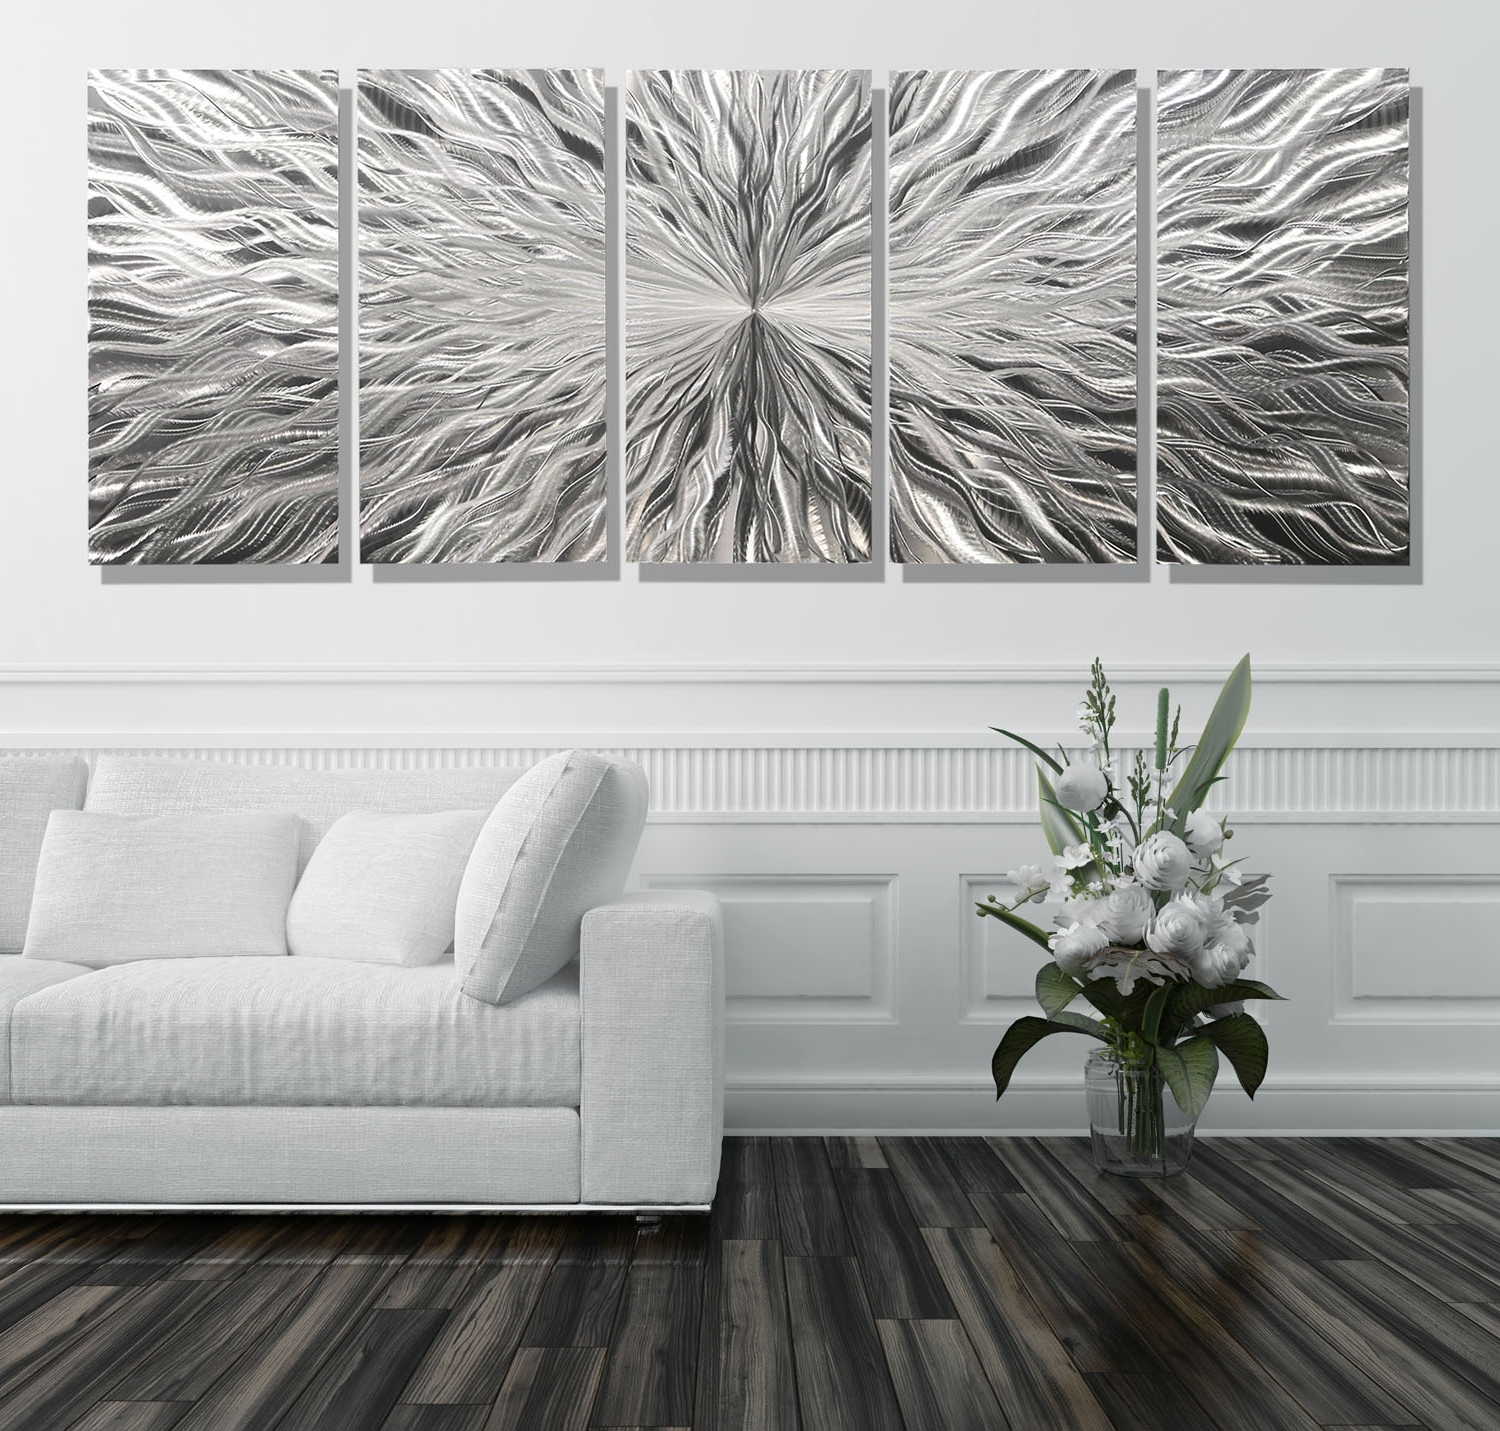 2018 Vortex 5 Xl – Extra Large 5 Panel Modern Abstract Metal Wall Art With Extra Large Wall Art (View 1 of 15)